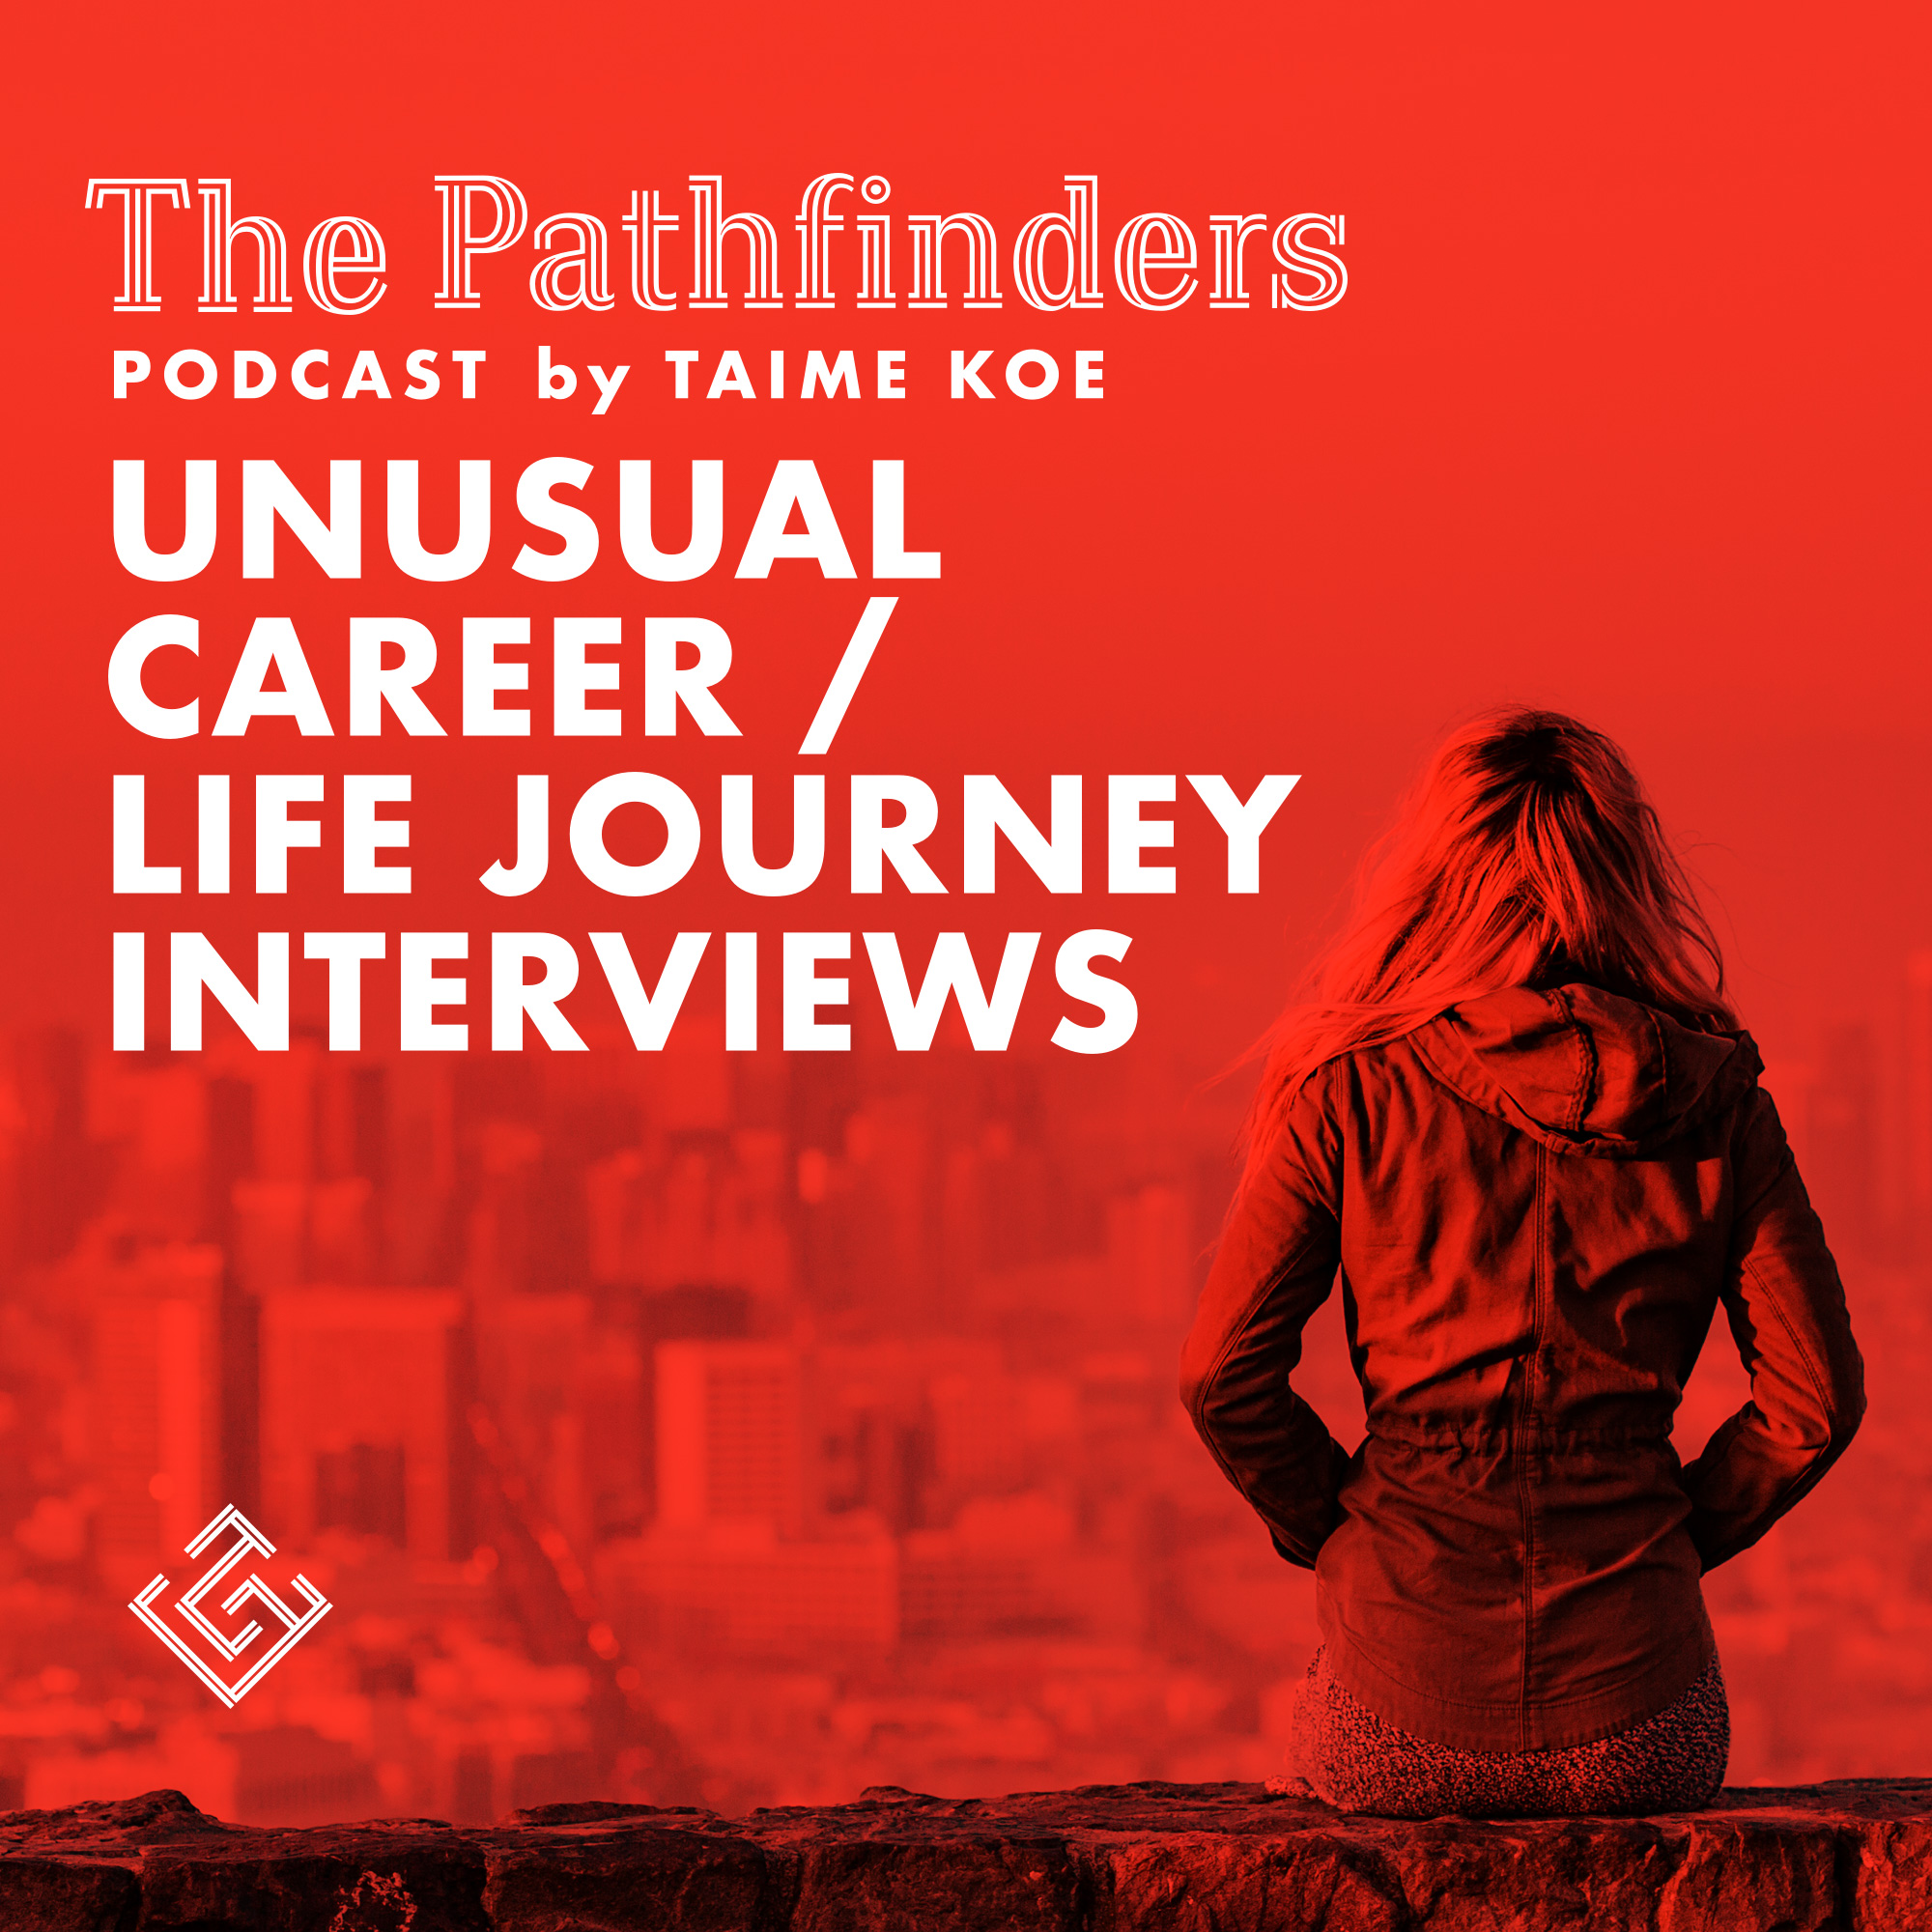 The Pathfinders Podcast